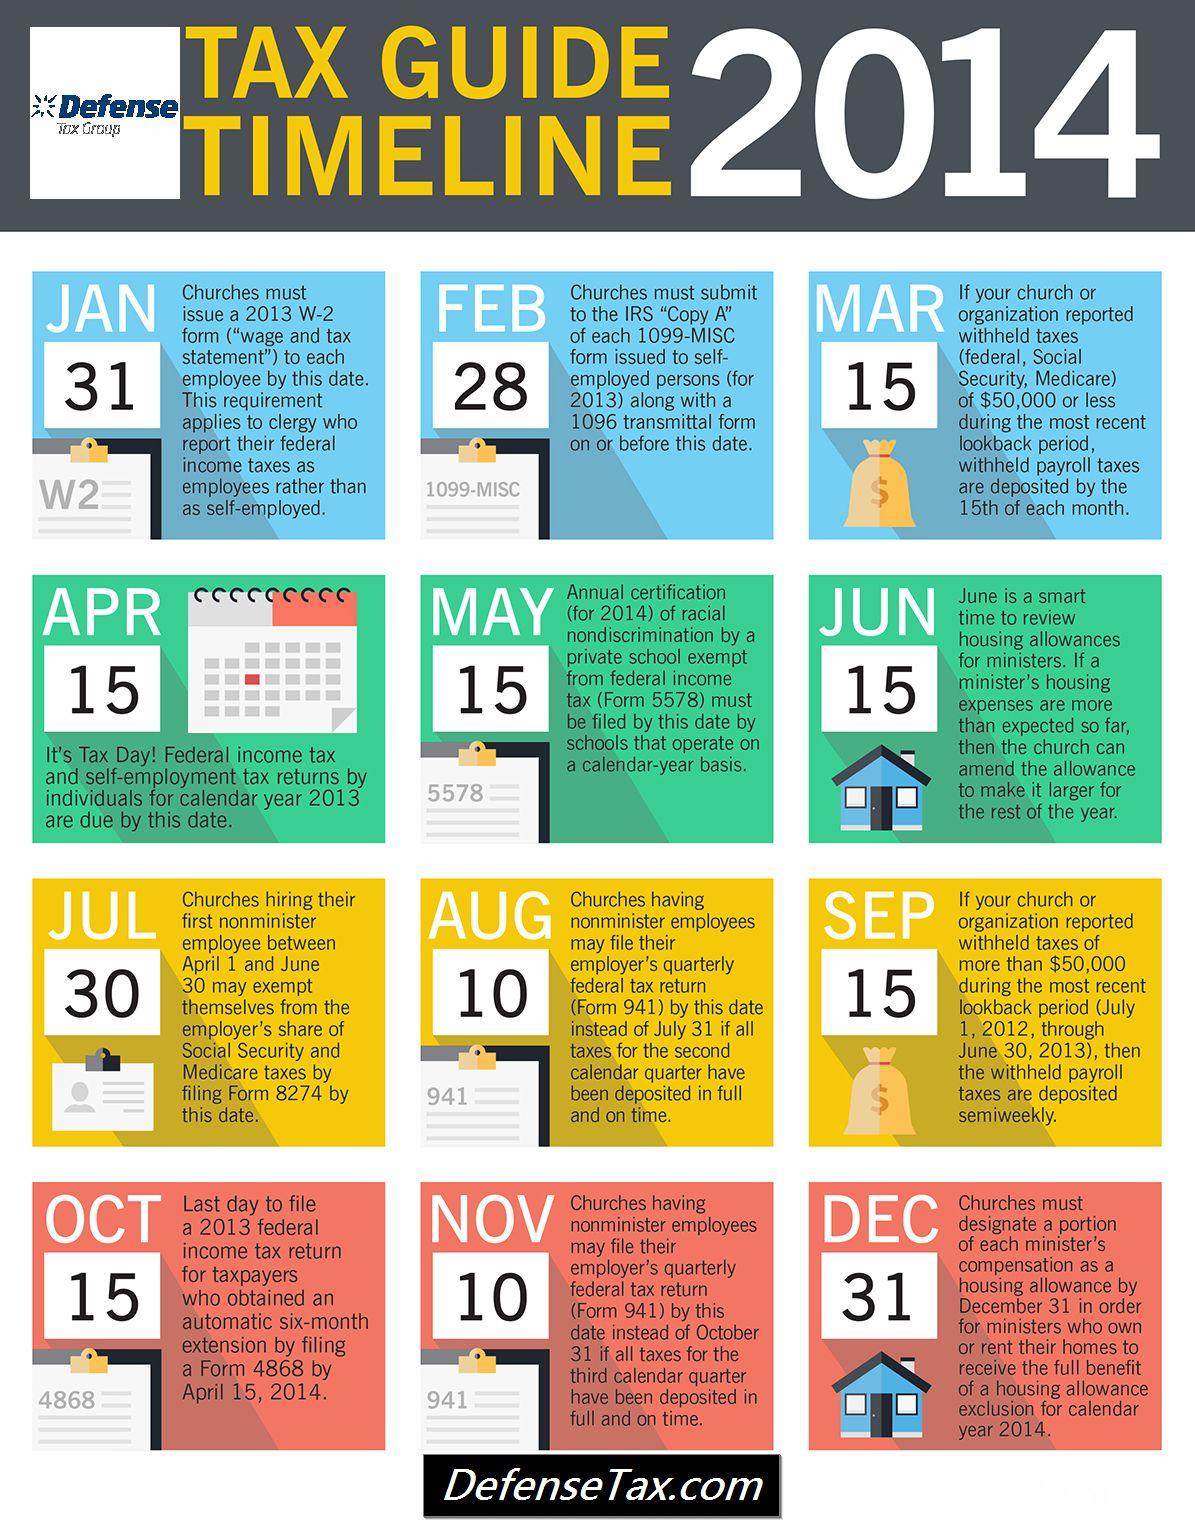 Tax guide timeline 2014 infographic critical dates deadlines january 31 2014 falaconquin